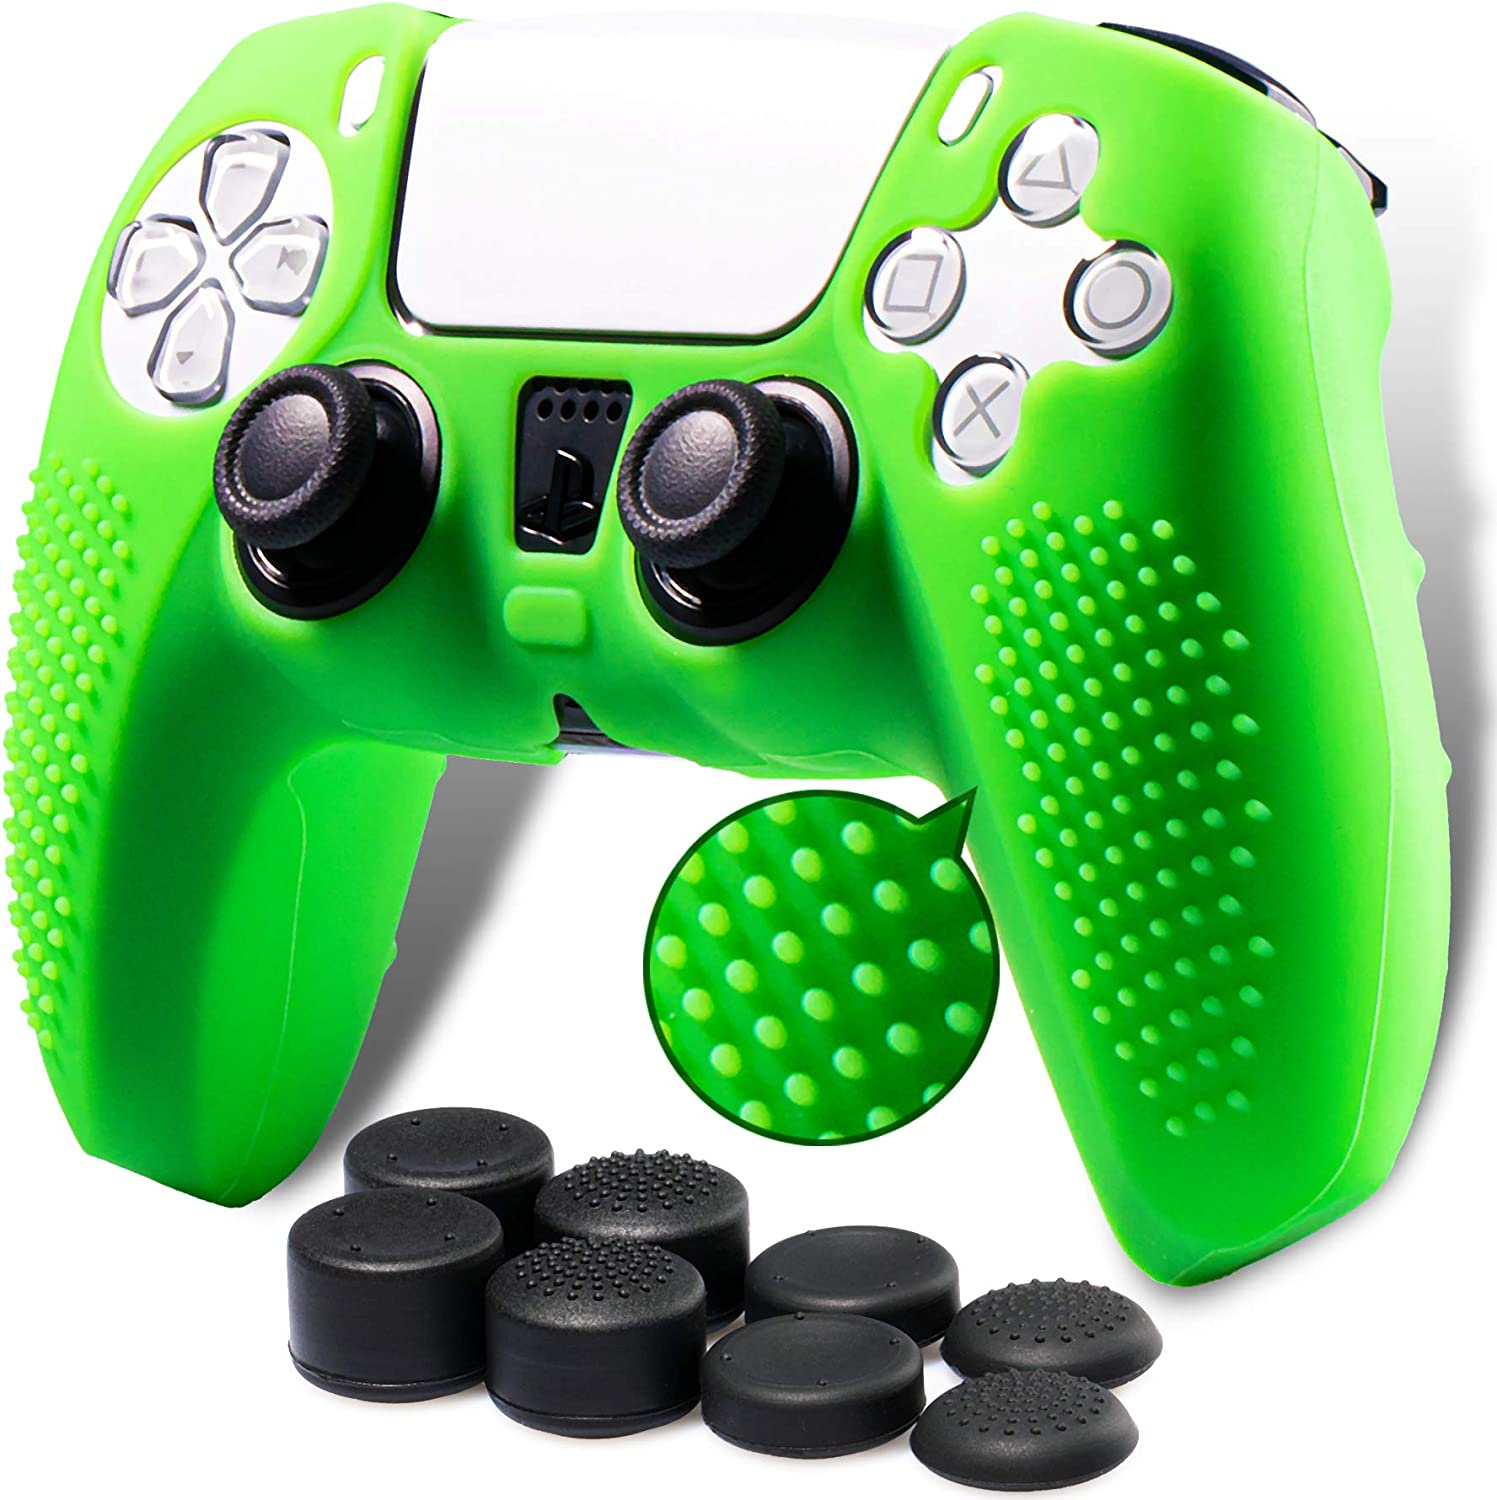 Playrealm Soft 3D Dots Silicone Skin Cover x 1  Thumb Grips x 8